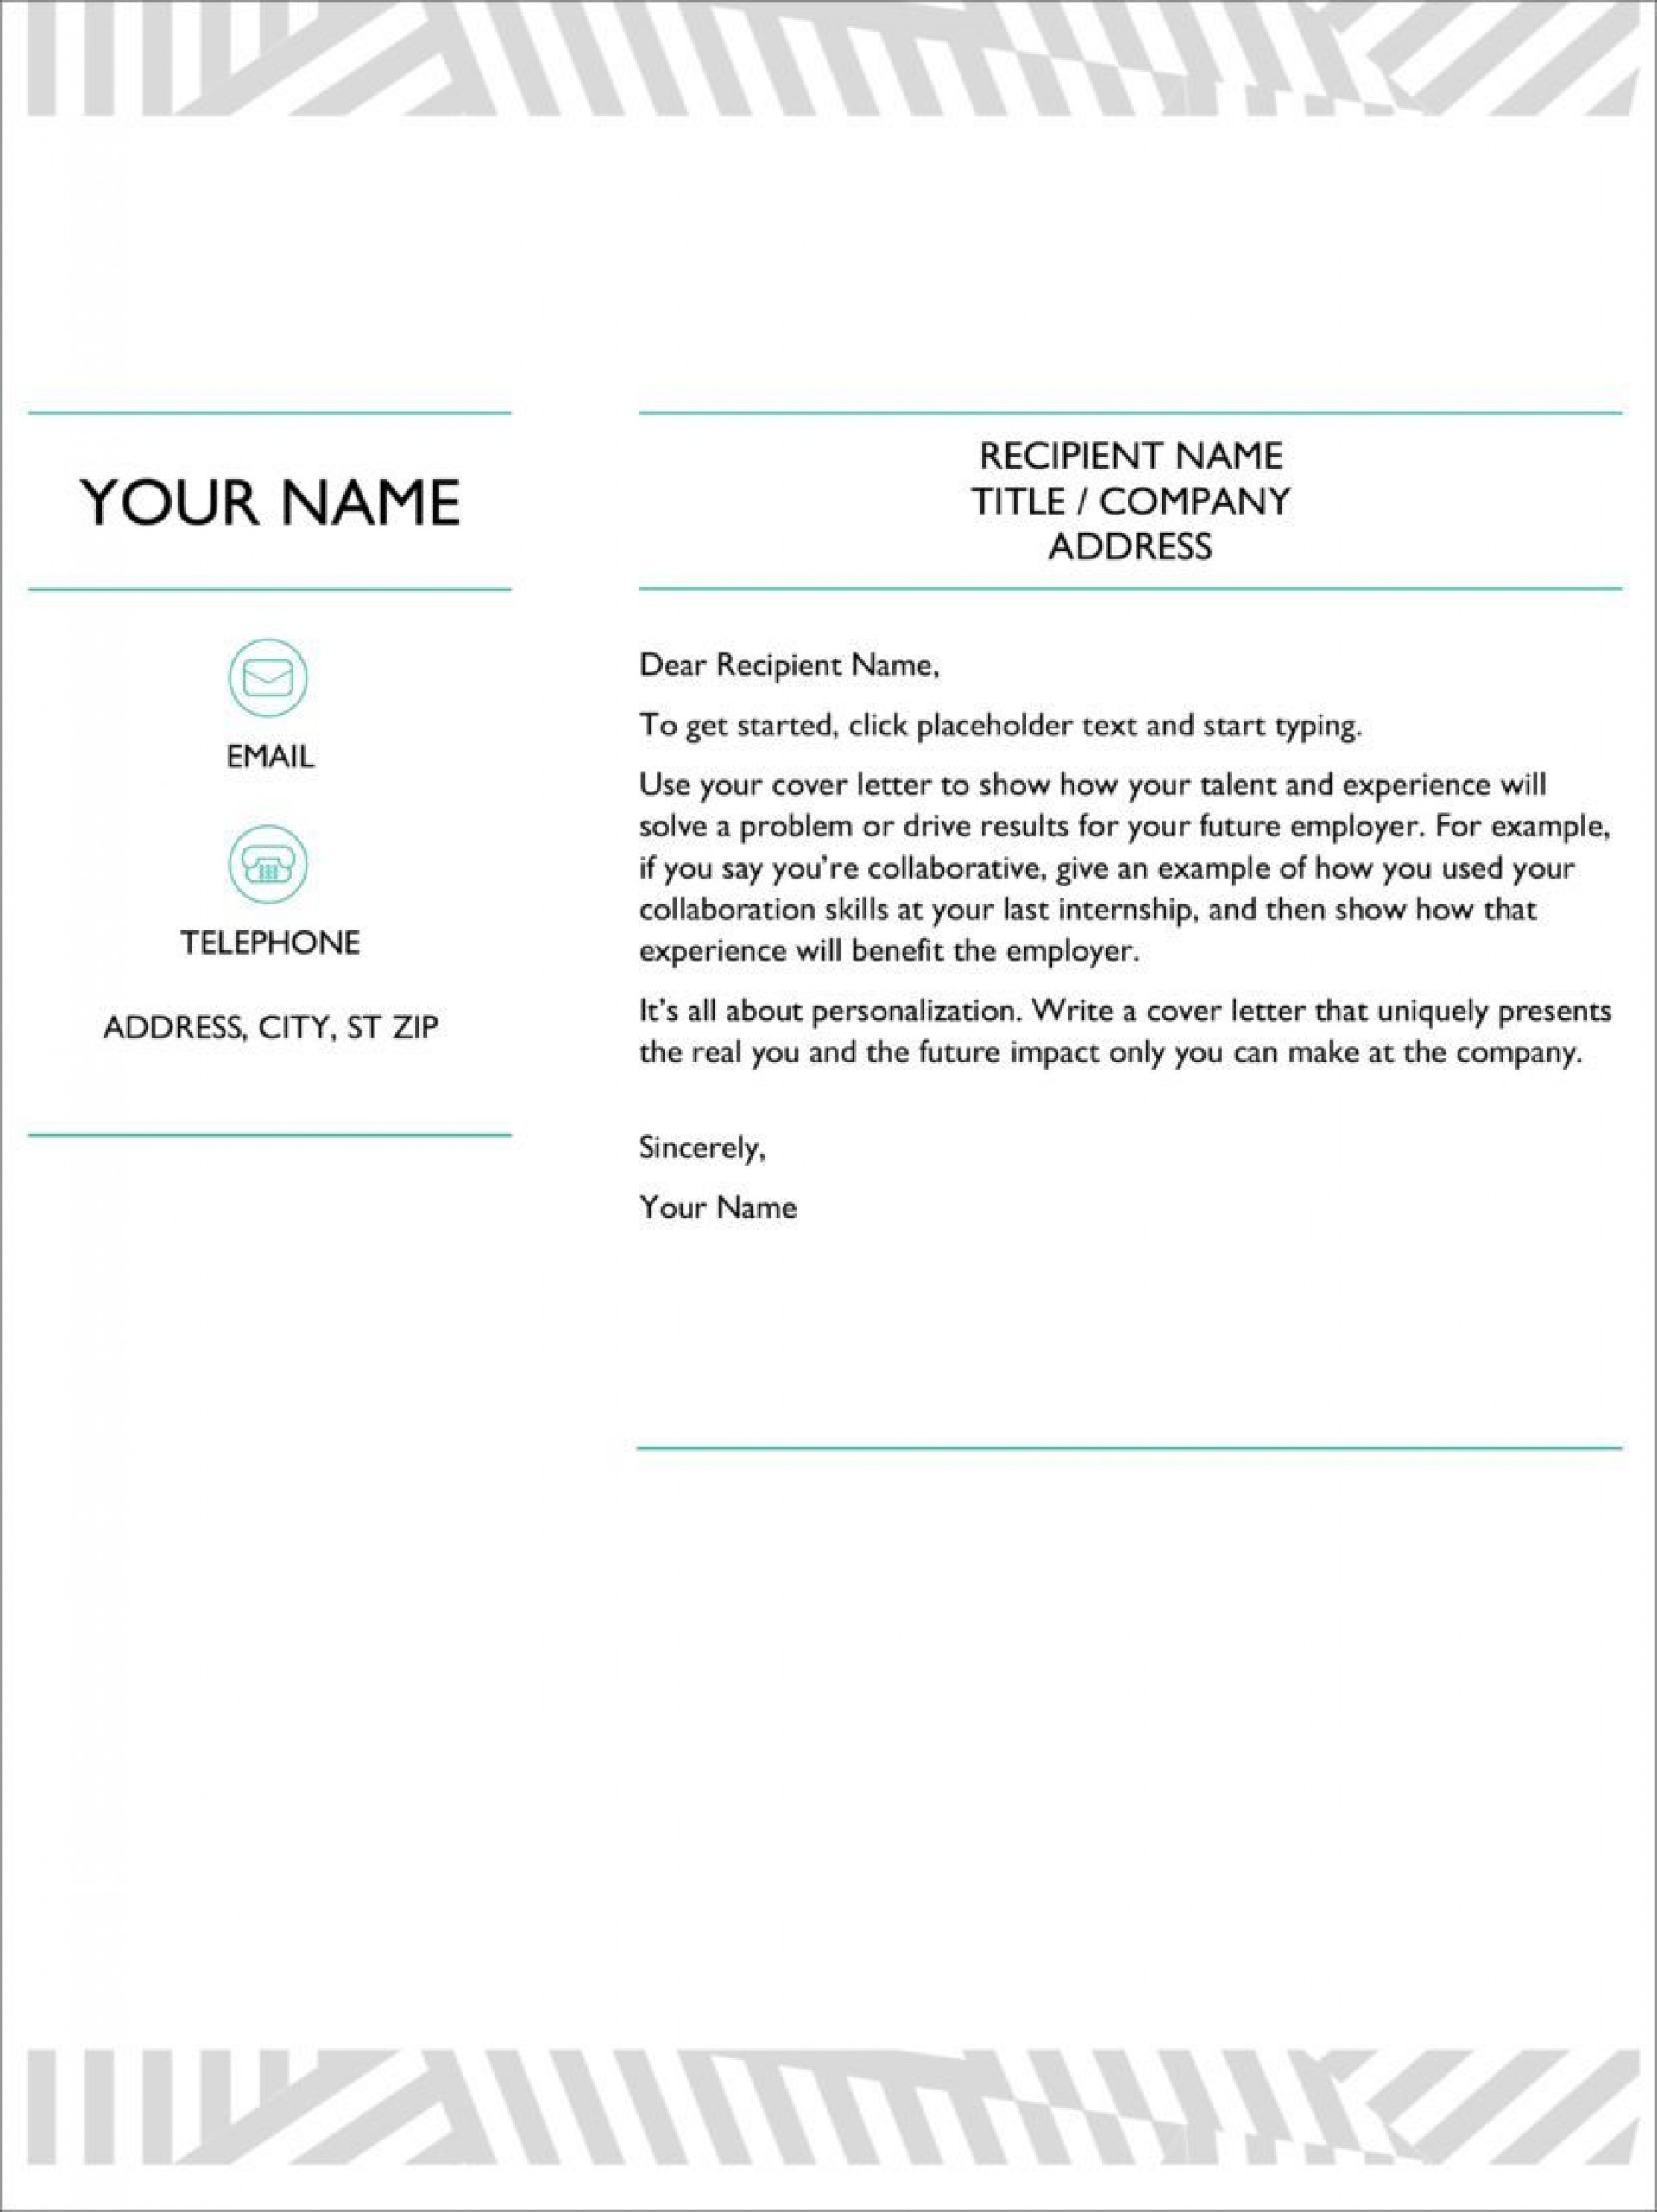 004 Outstanding Microsoft Cover Letter Template Download Concept  Word Free1920